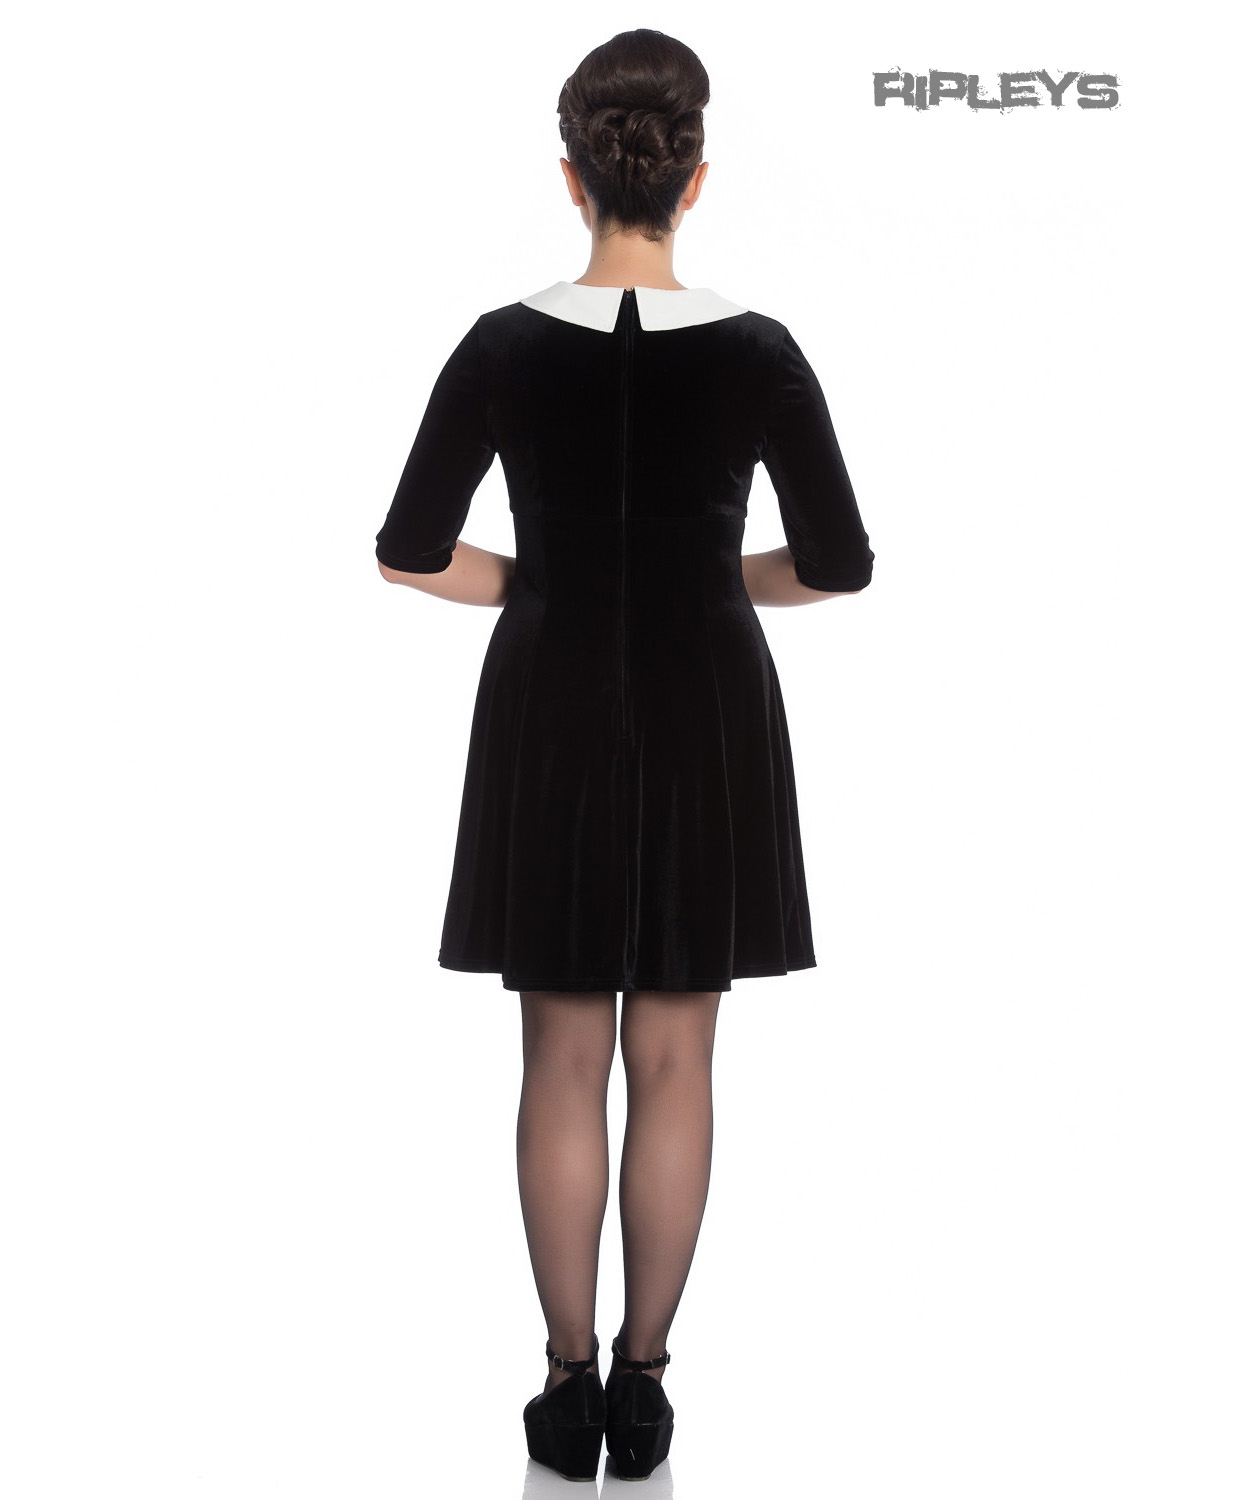 Hell-Bunny-Mini-Skater-Dress-Festive-Christmas-SNOWY-Black-Snowflakes-All-Sizes thumbnail 8